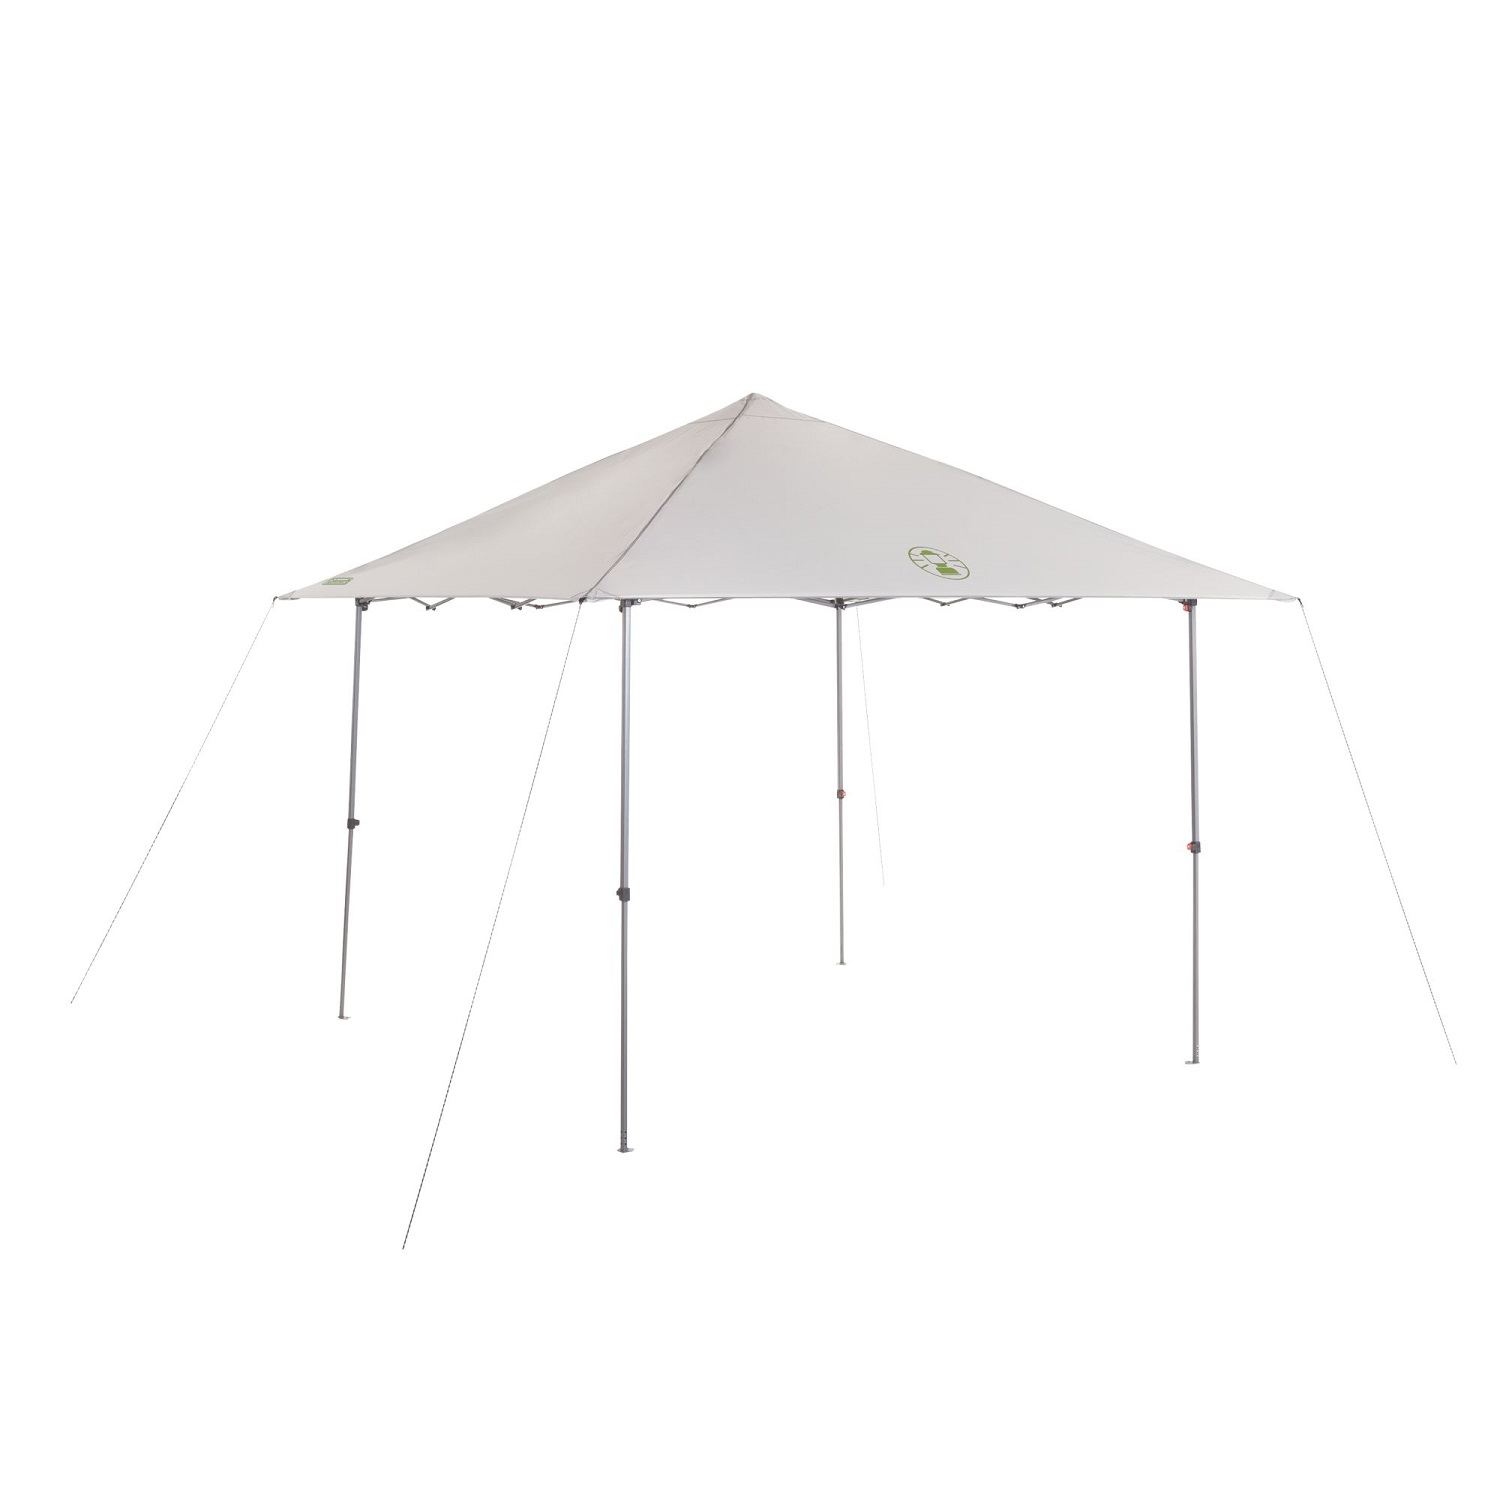 Coleman Light and Fast 10 x 10 Instant Sun Shelter  sc 1 st  AAA Discounts and Rewards & Coleman 10 x 10 Slant Leg Shelter Gold - AAA Discounts and Rewards